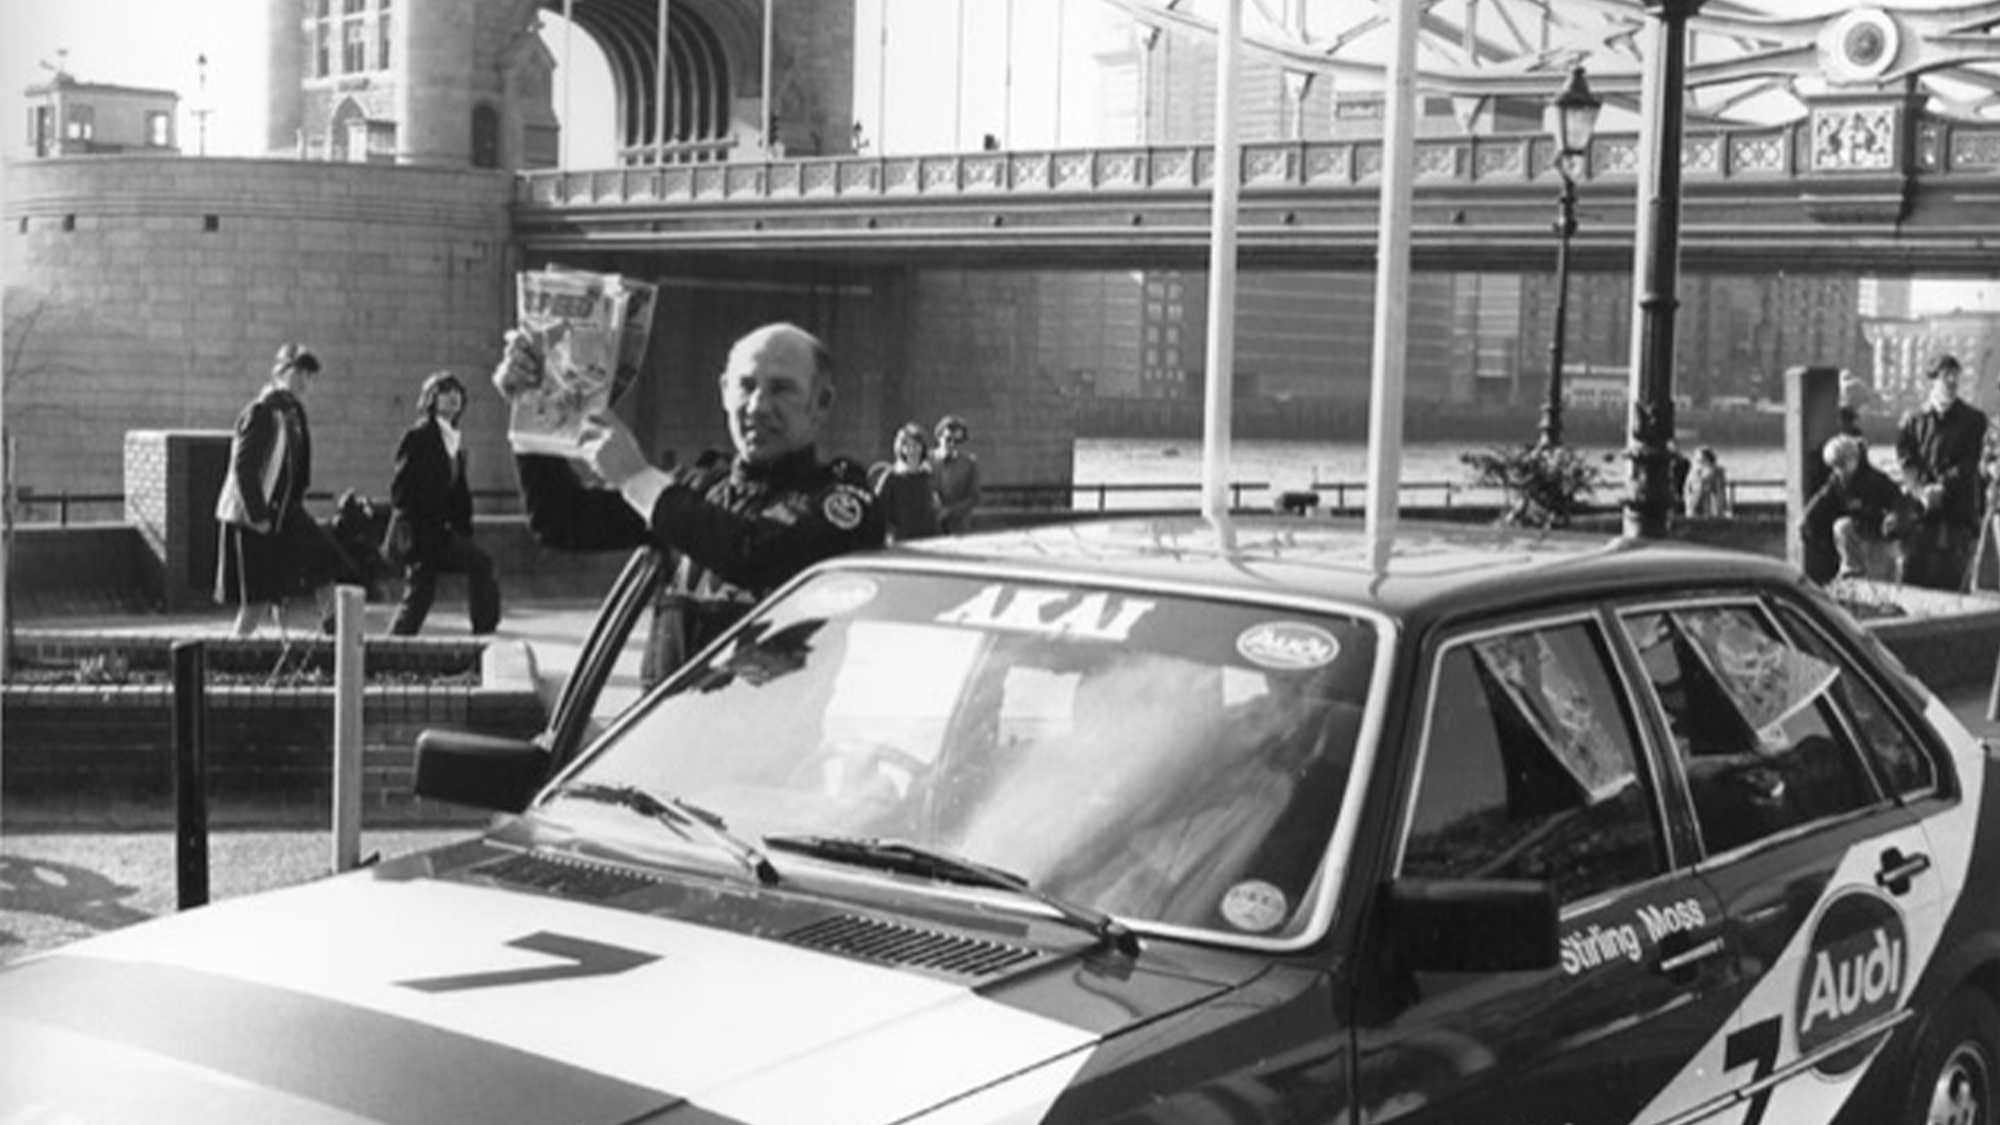 Stirling Moss at Tower Bridge with Speed comic